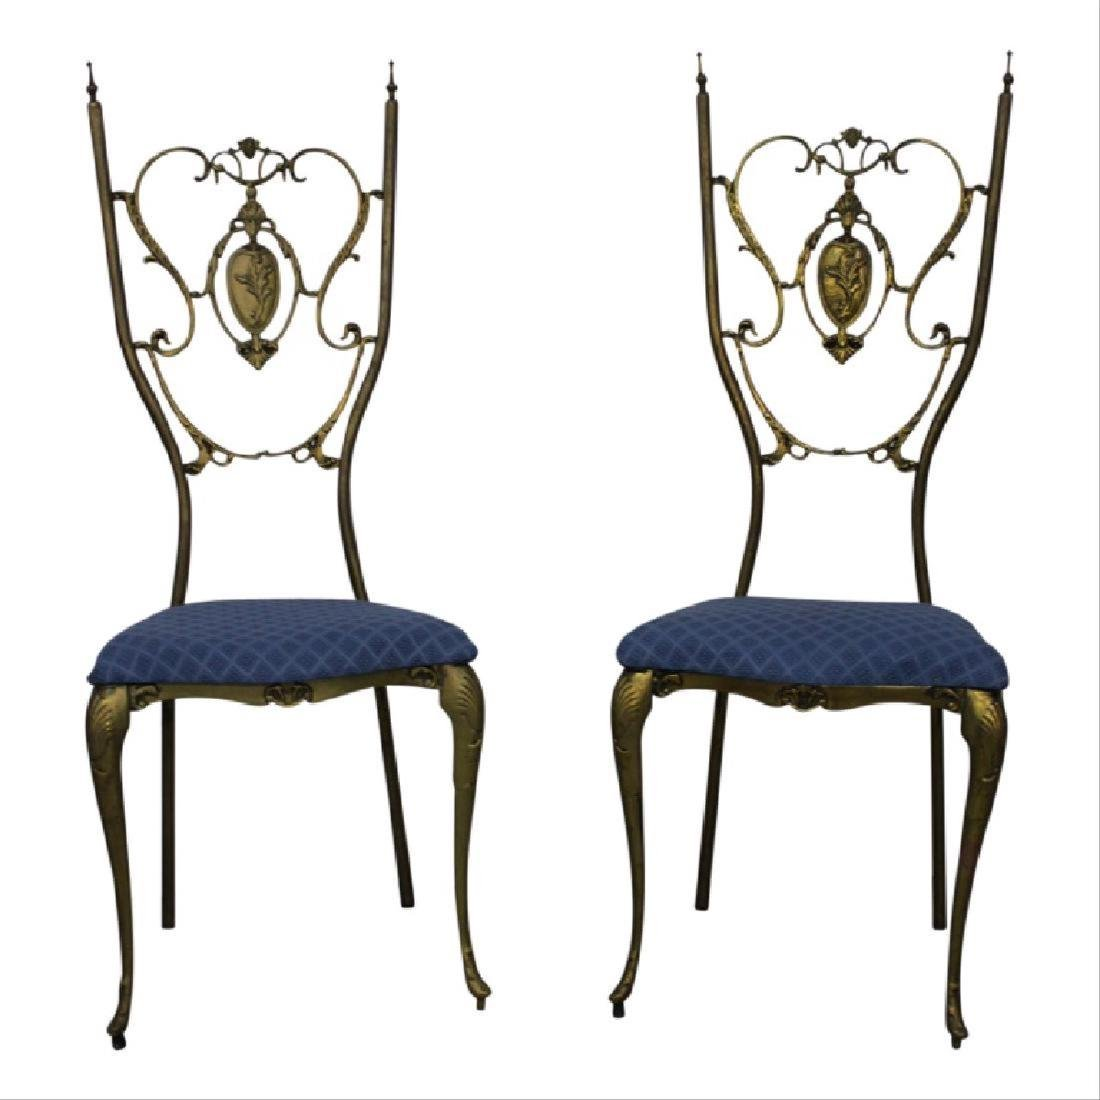 Pair of Neoclassical Brass Chairs